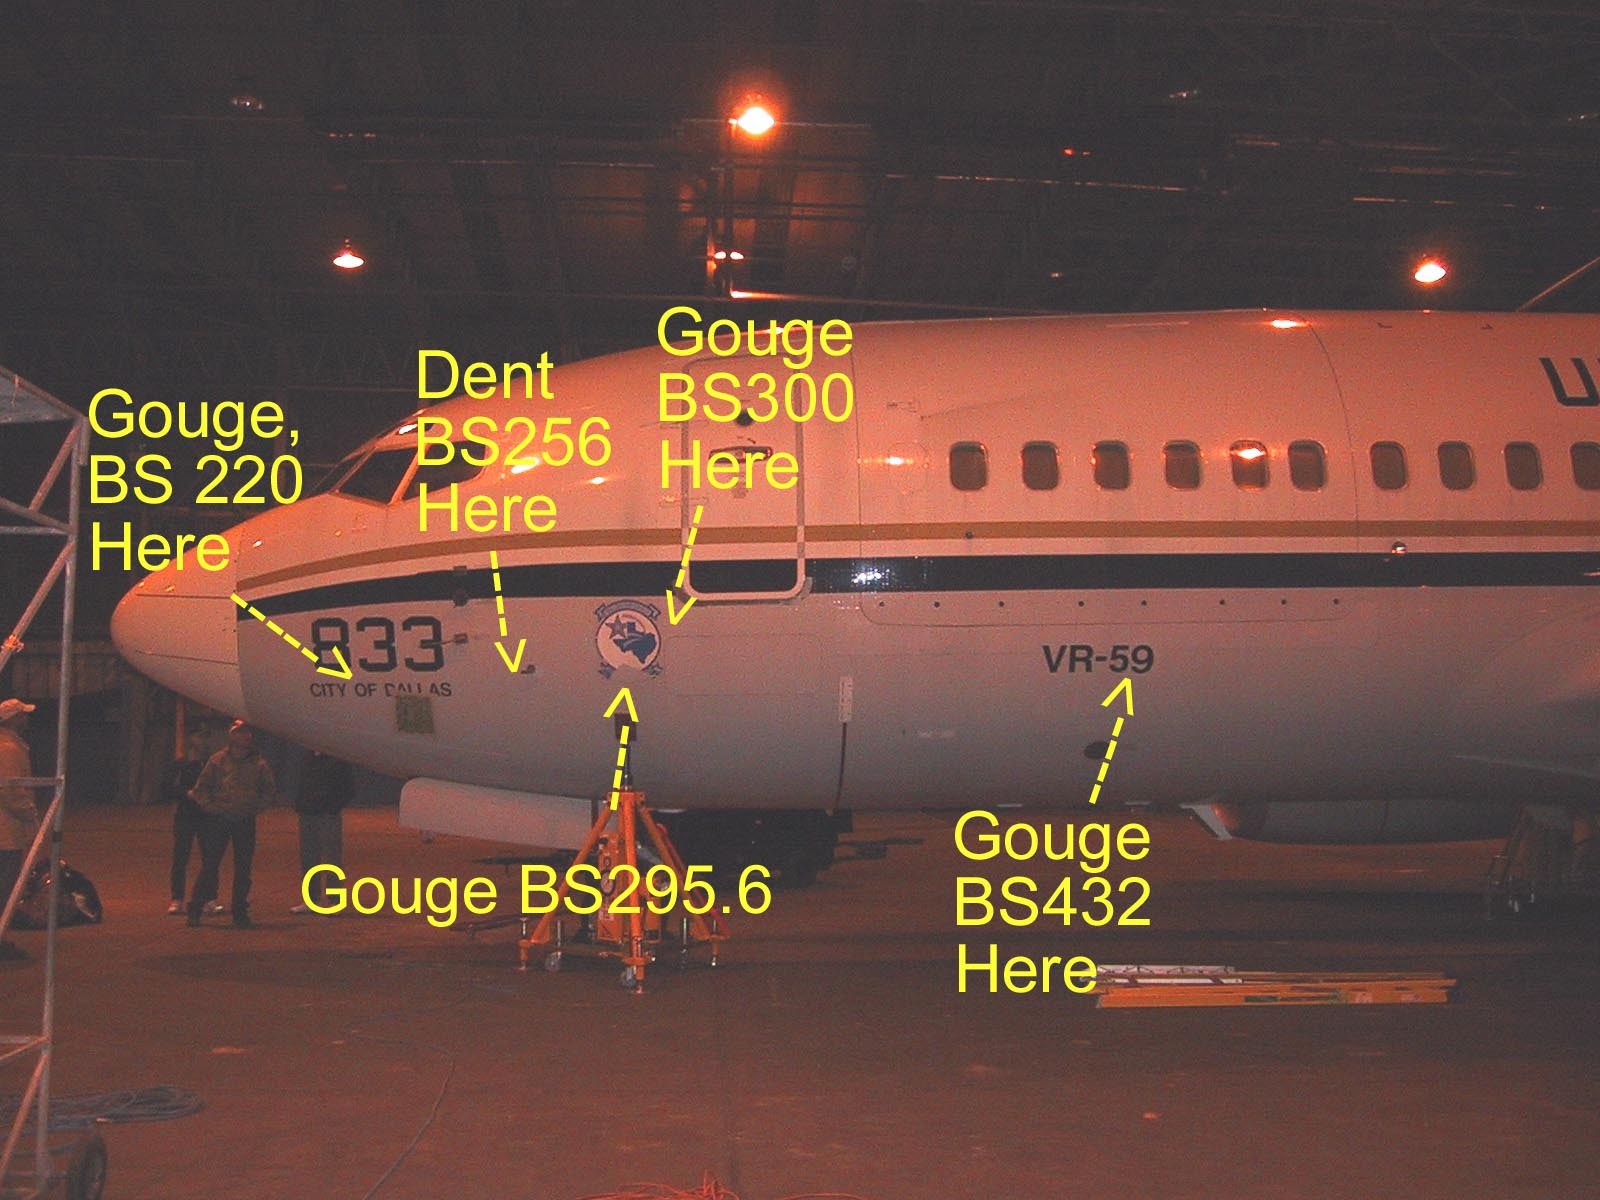 Aircraft 833 as it looked upon delivery to the Boeing facility in Wichita